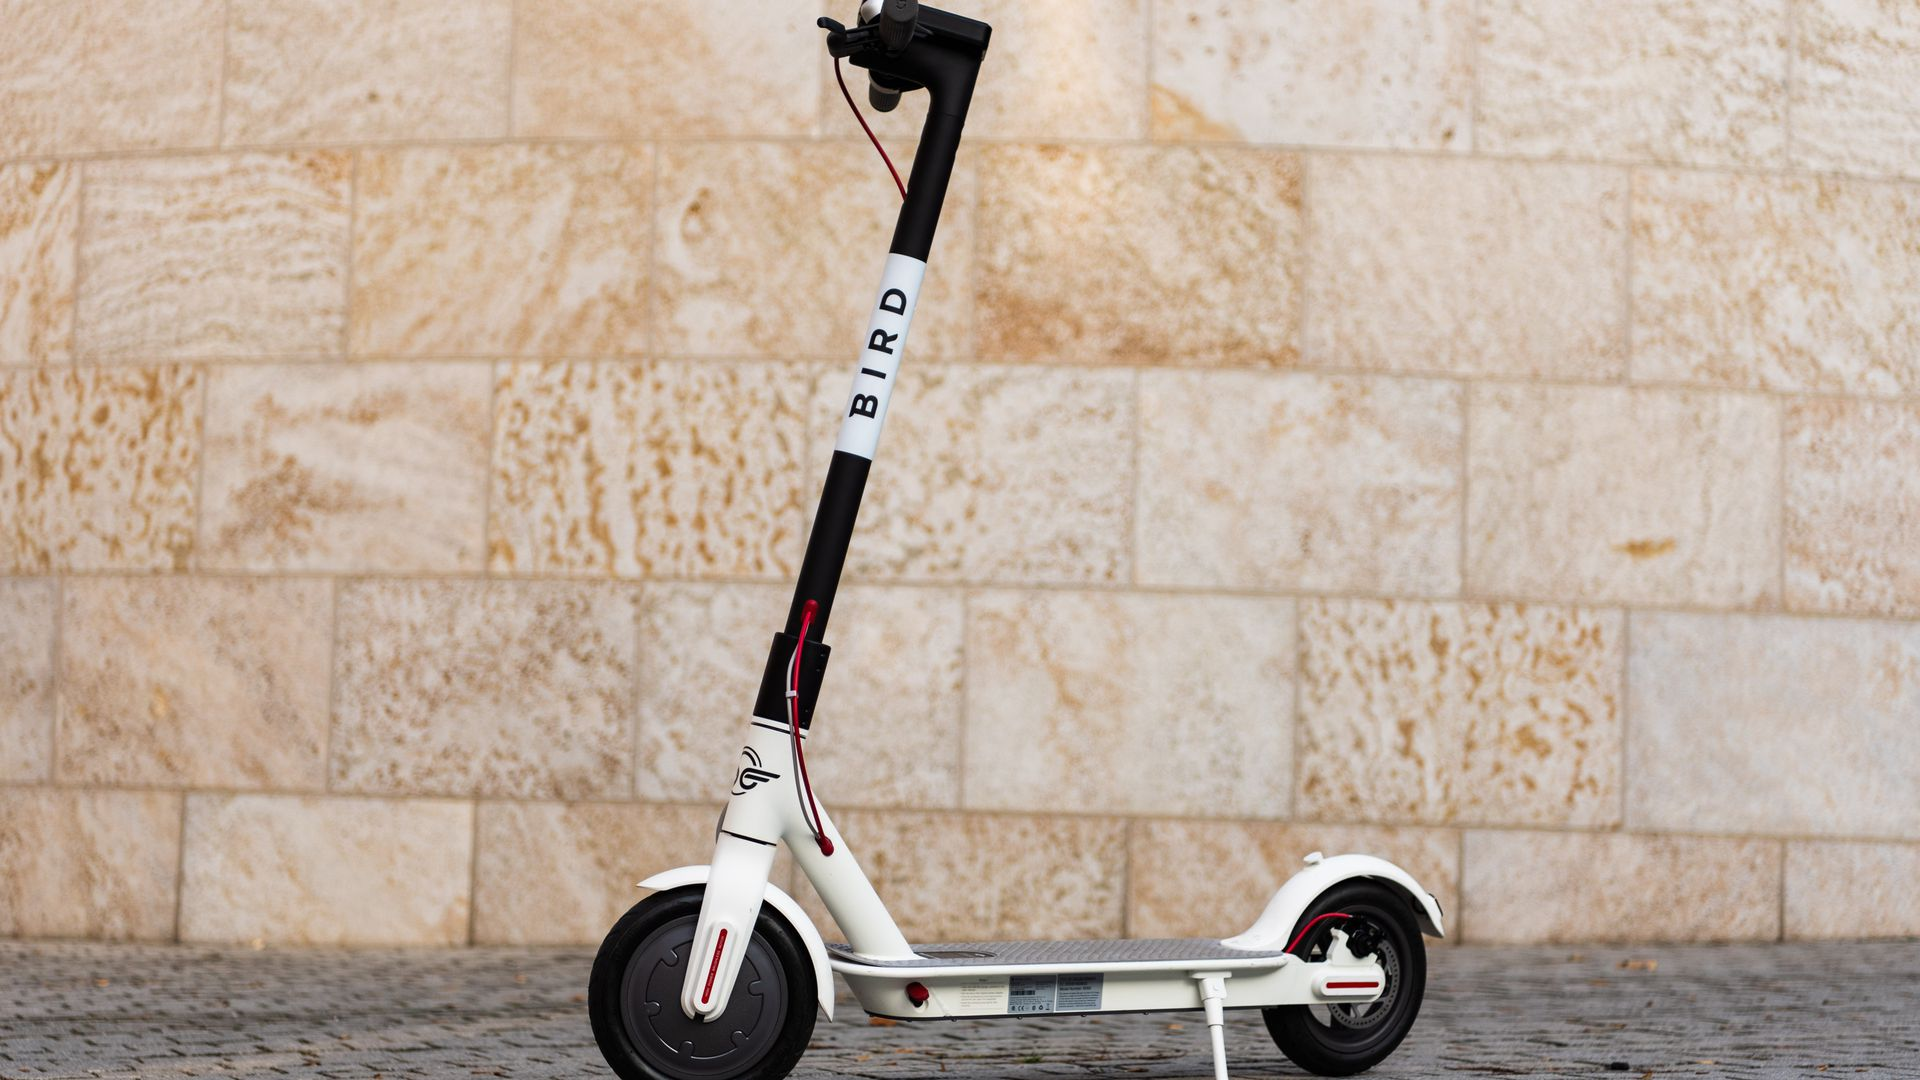 Photo of Bird electric scooter on street.